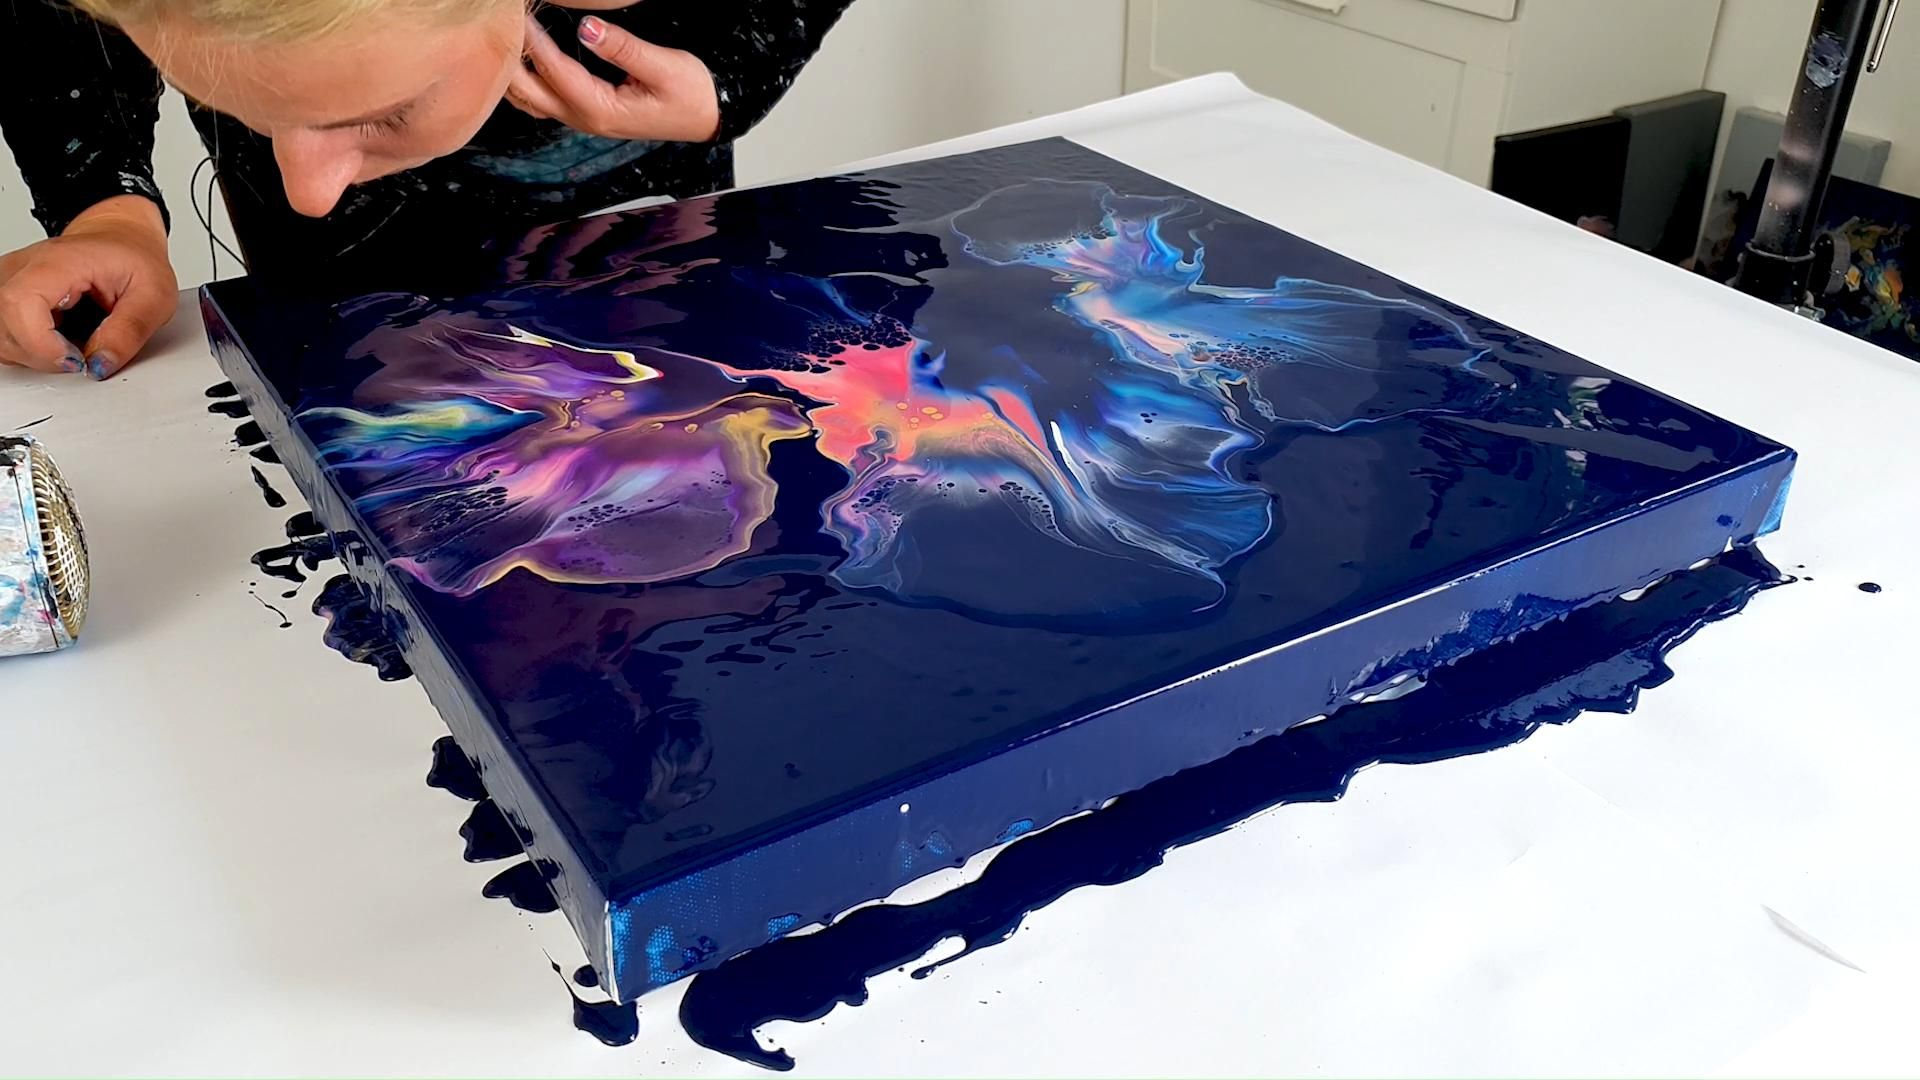 Milky Way GALAXY Painting - Acrylic Pouring (Stunn